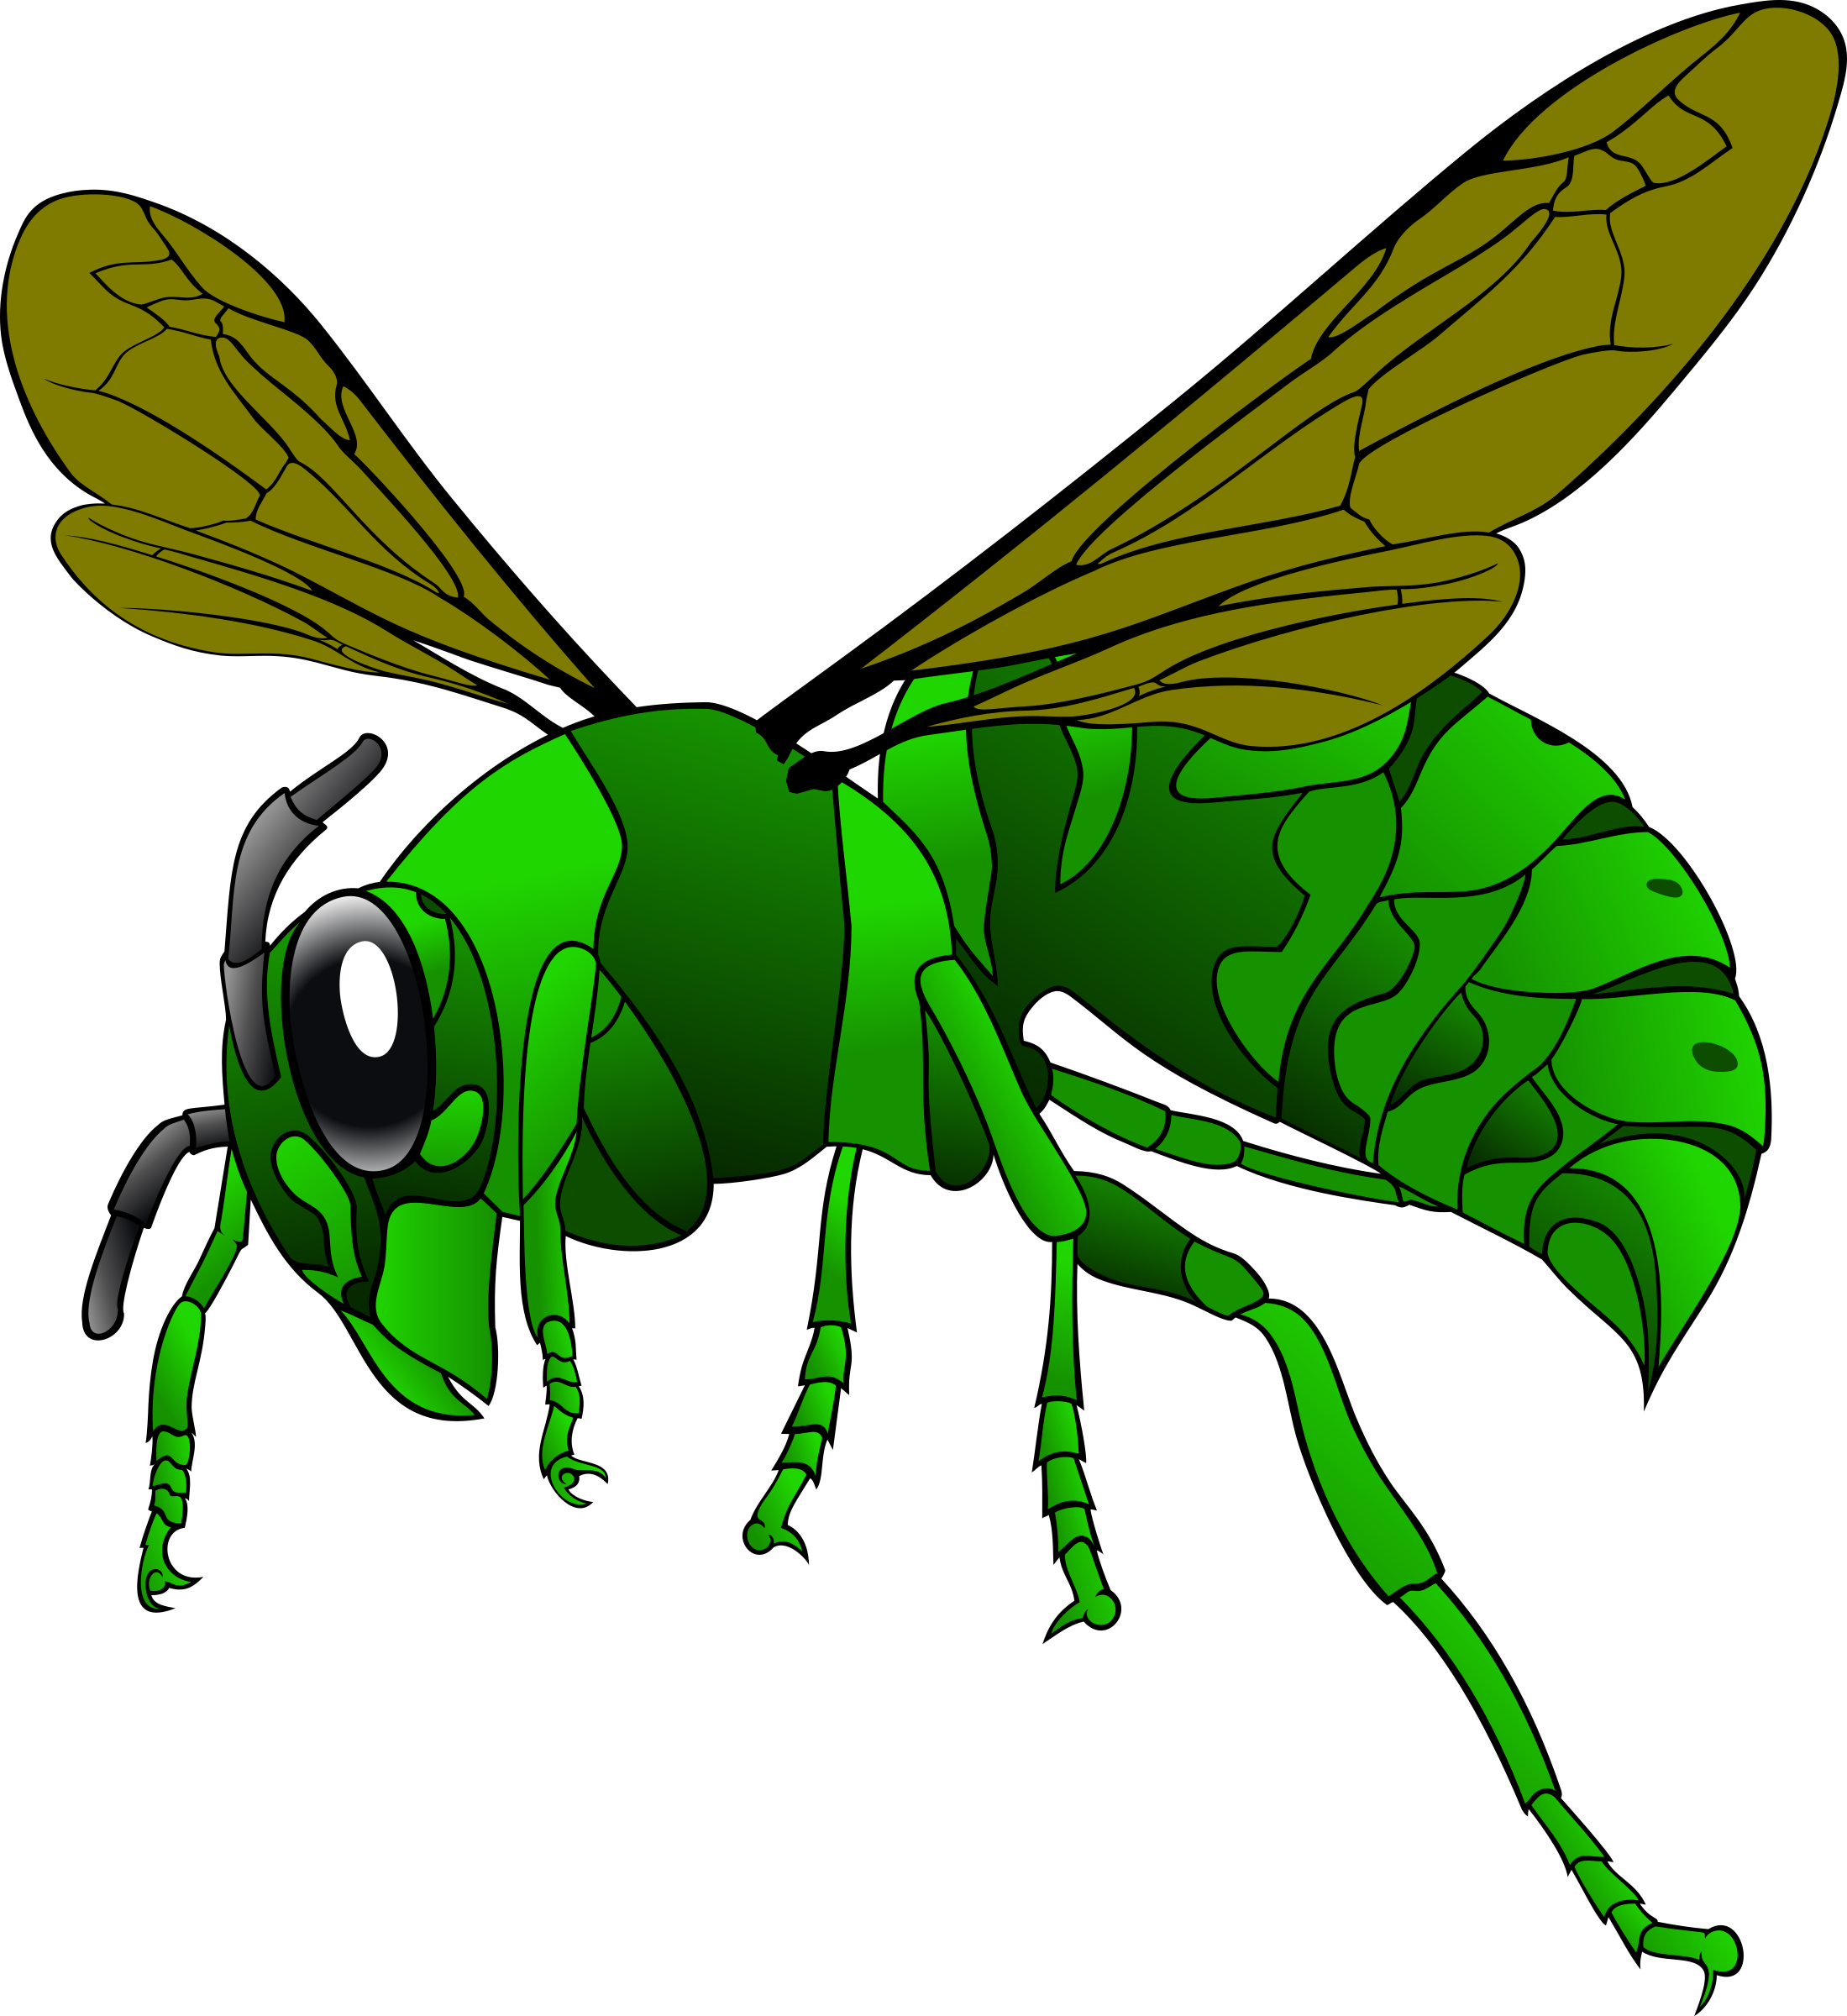 Insects clipart green insect. Hornet big image png